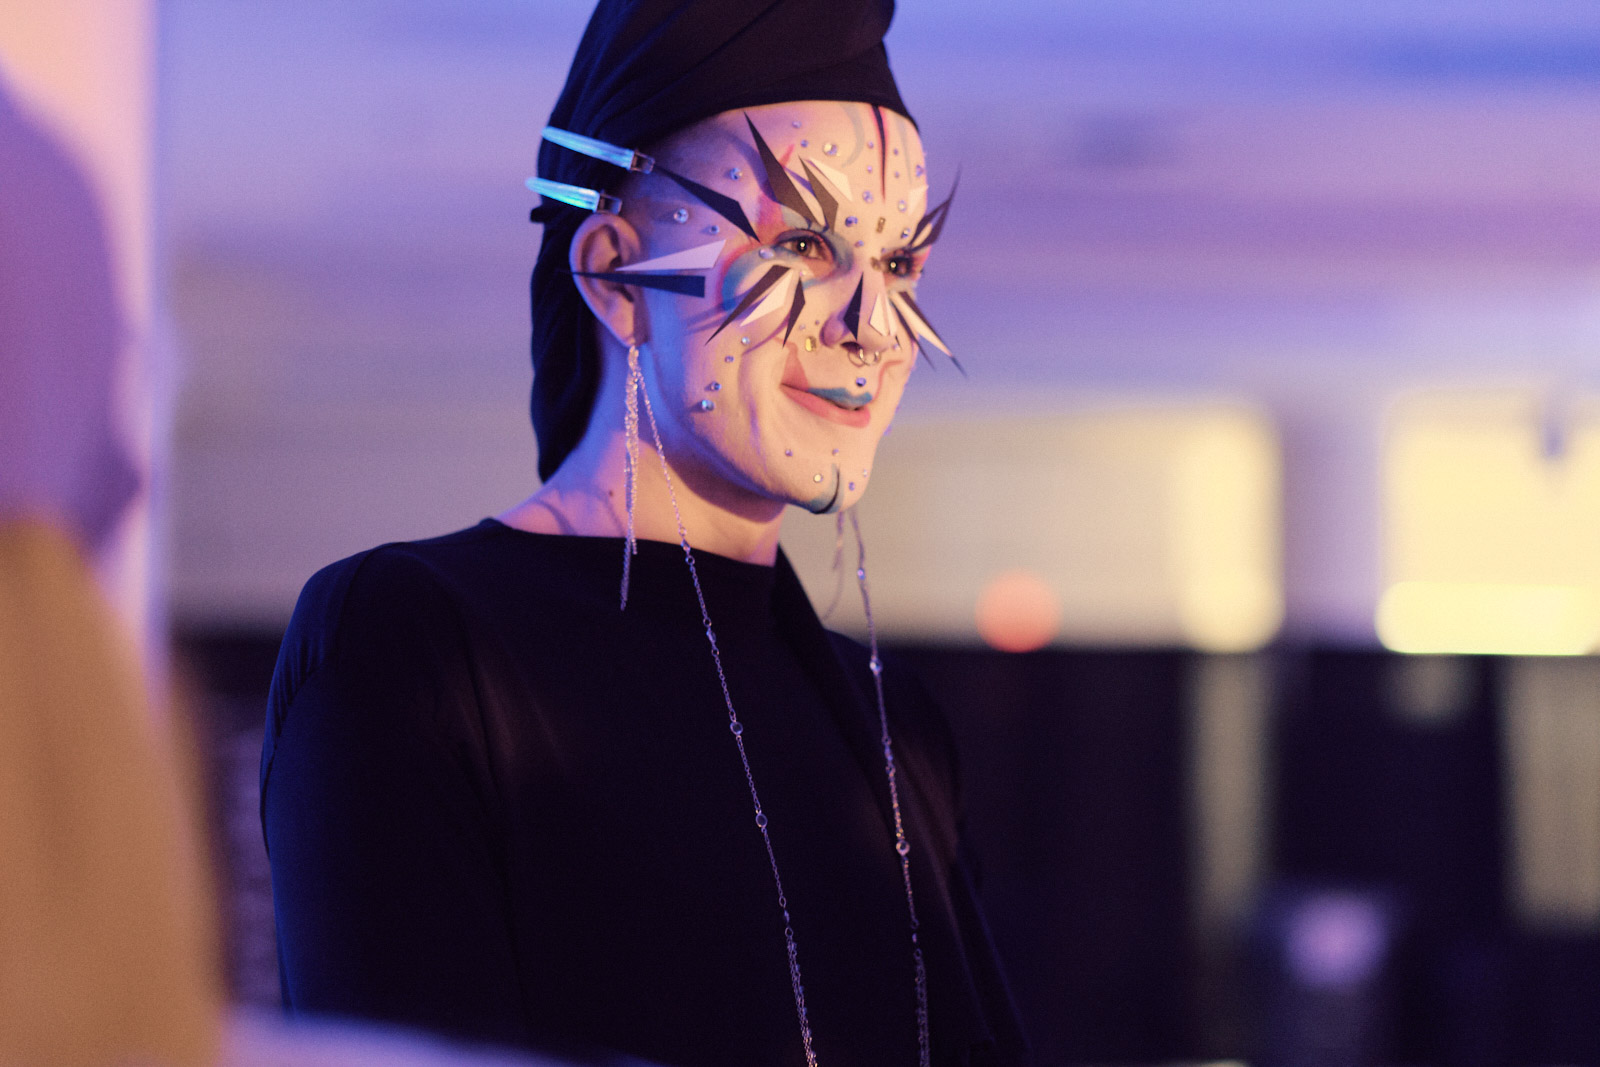 Face painted person, Gala 2019